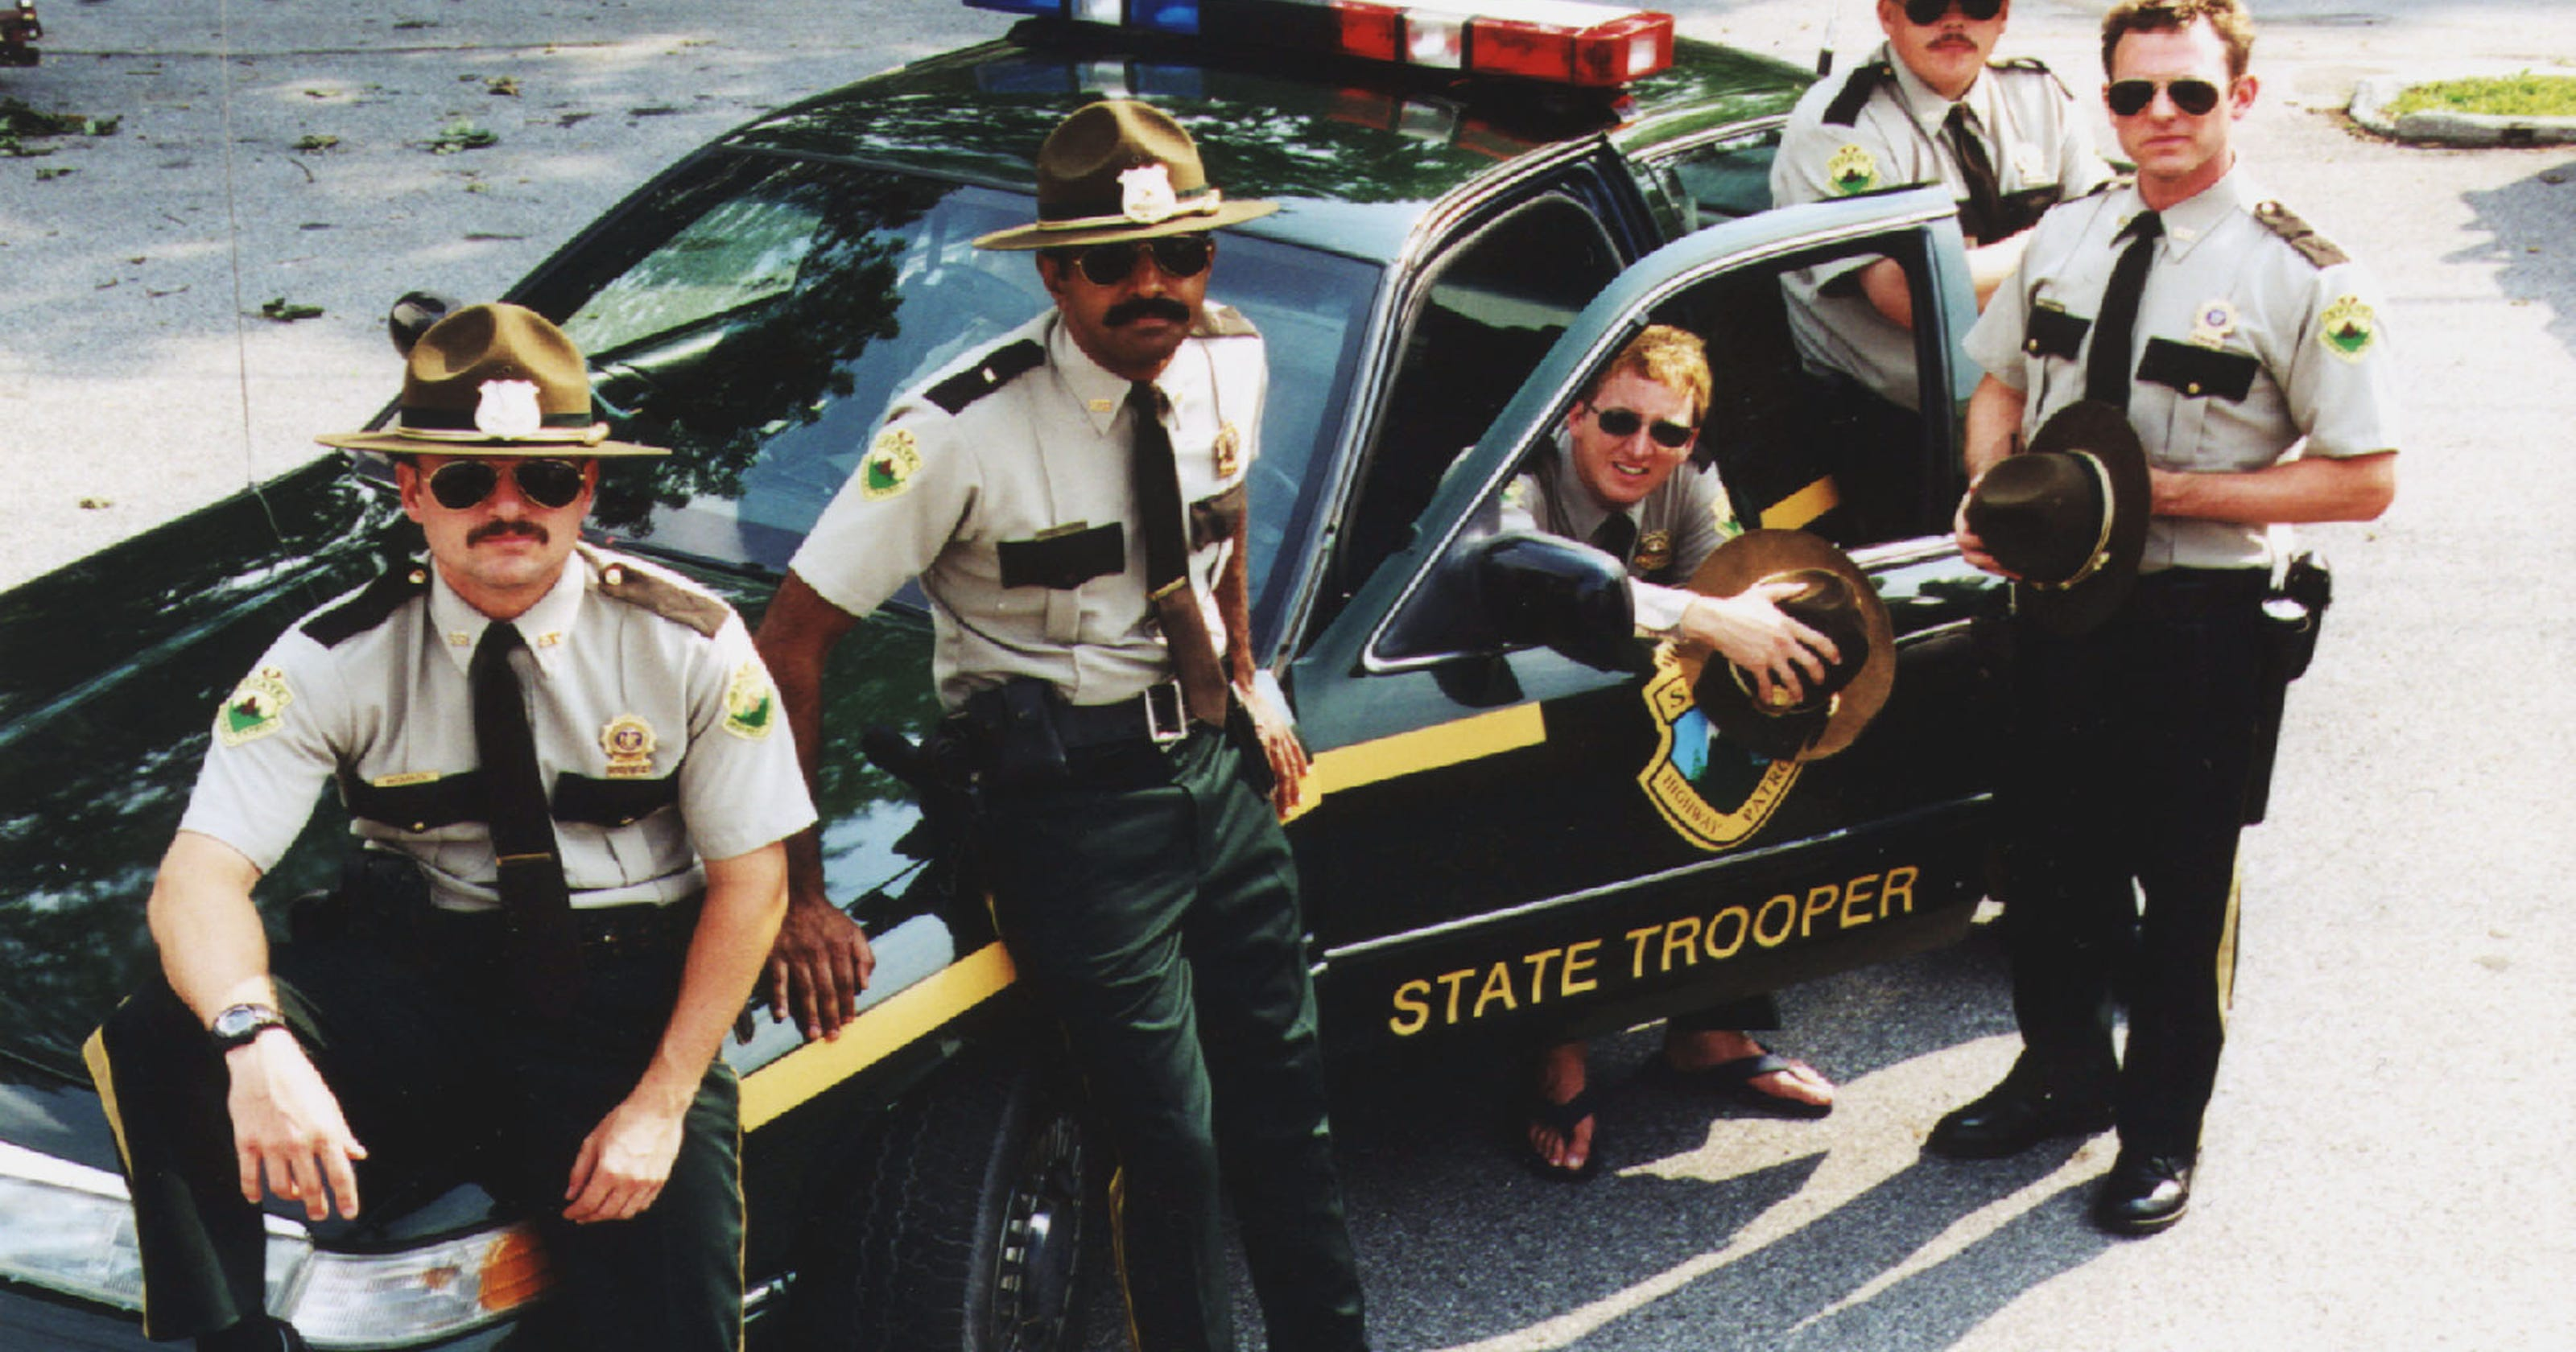 Super Troopers' sequel is out April 20